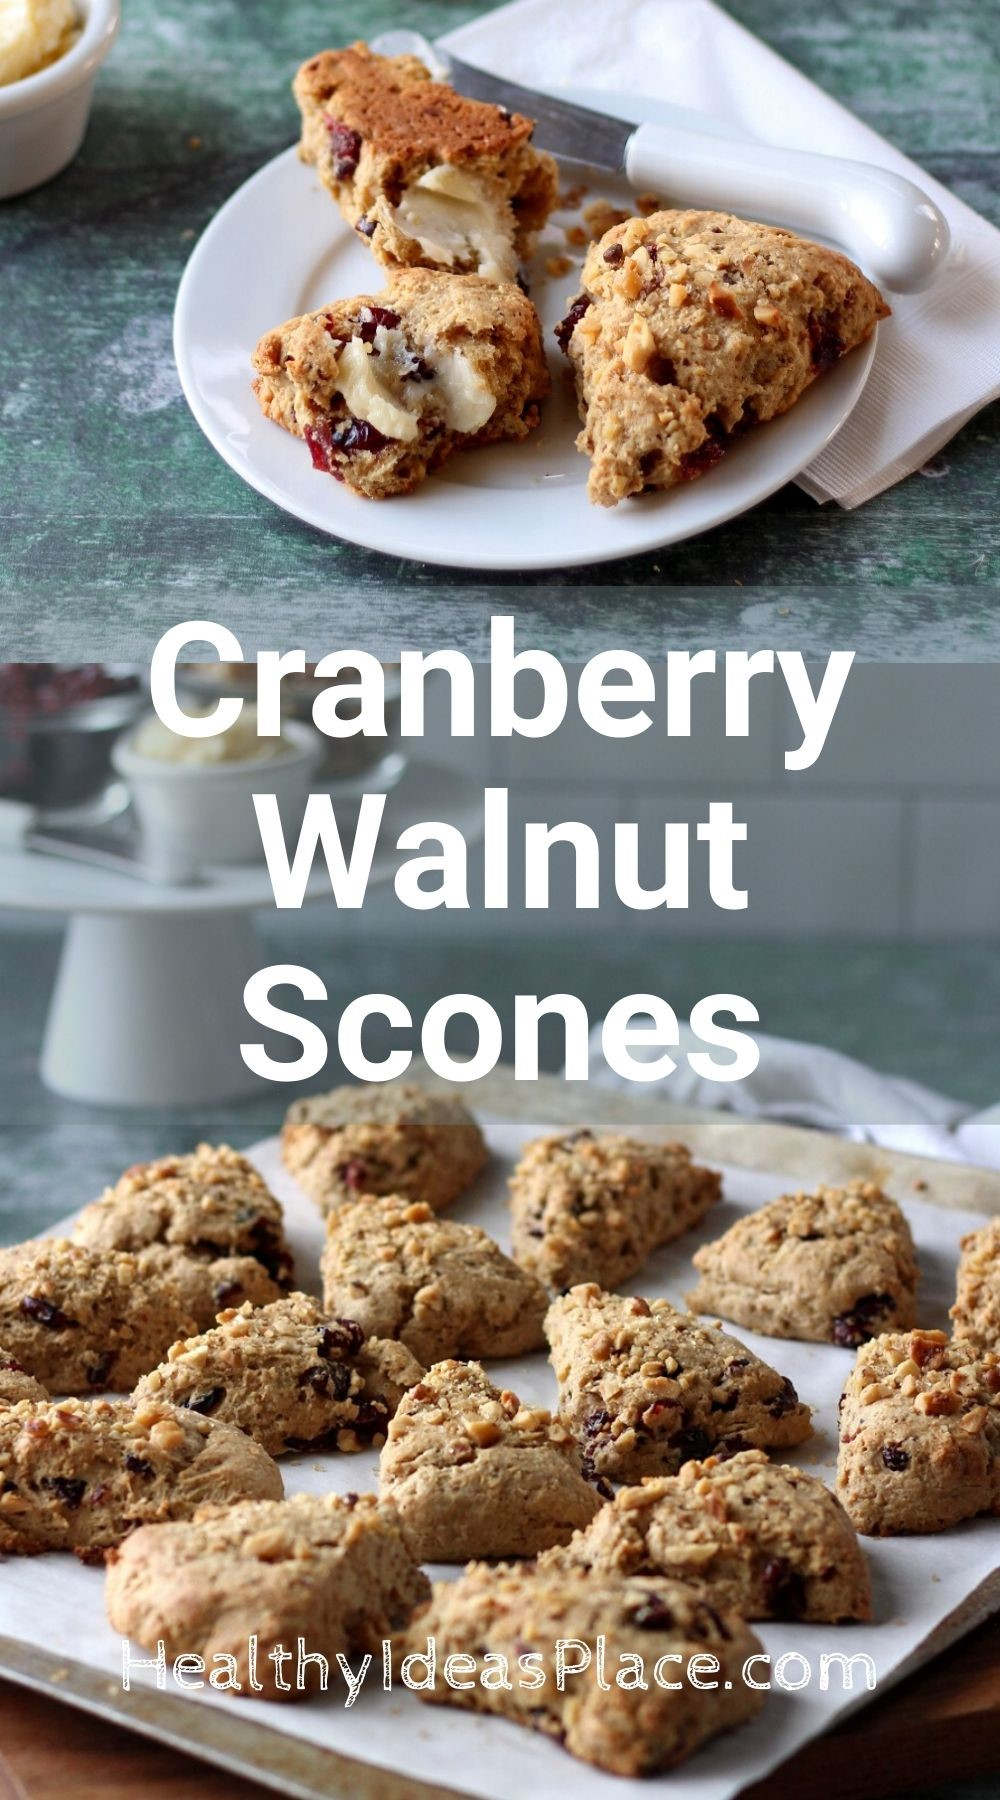 Collage image of scones on a white plate and scones on a baking sheet